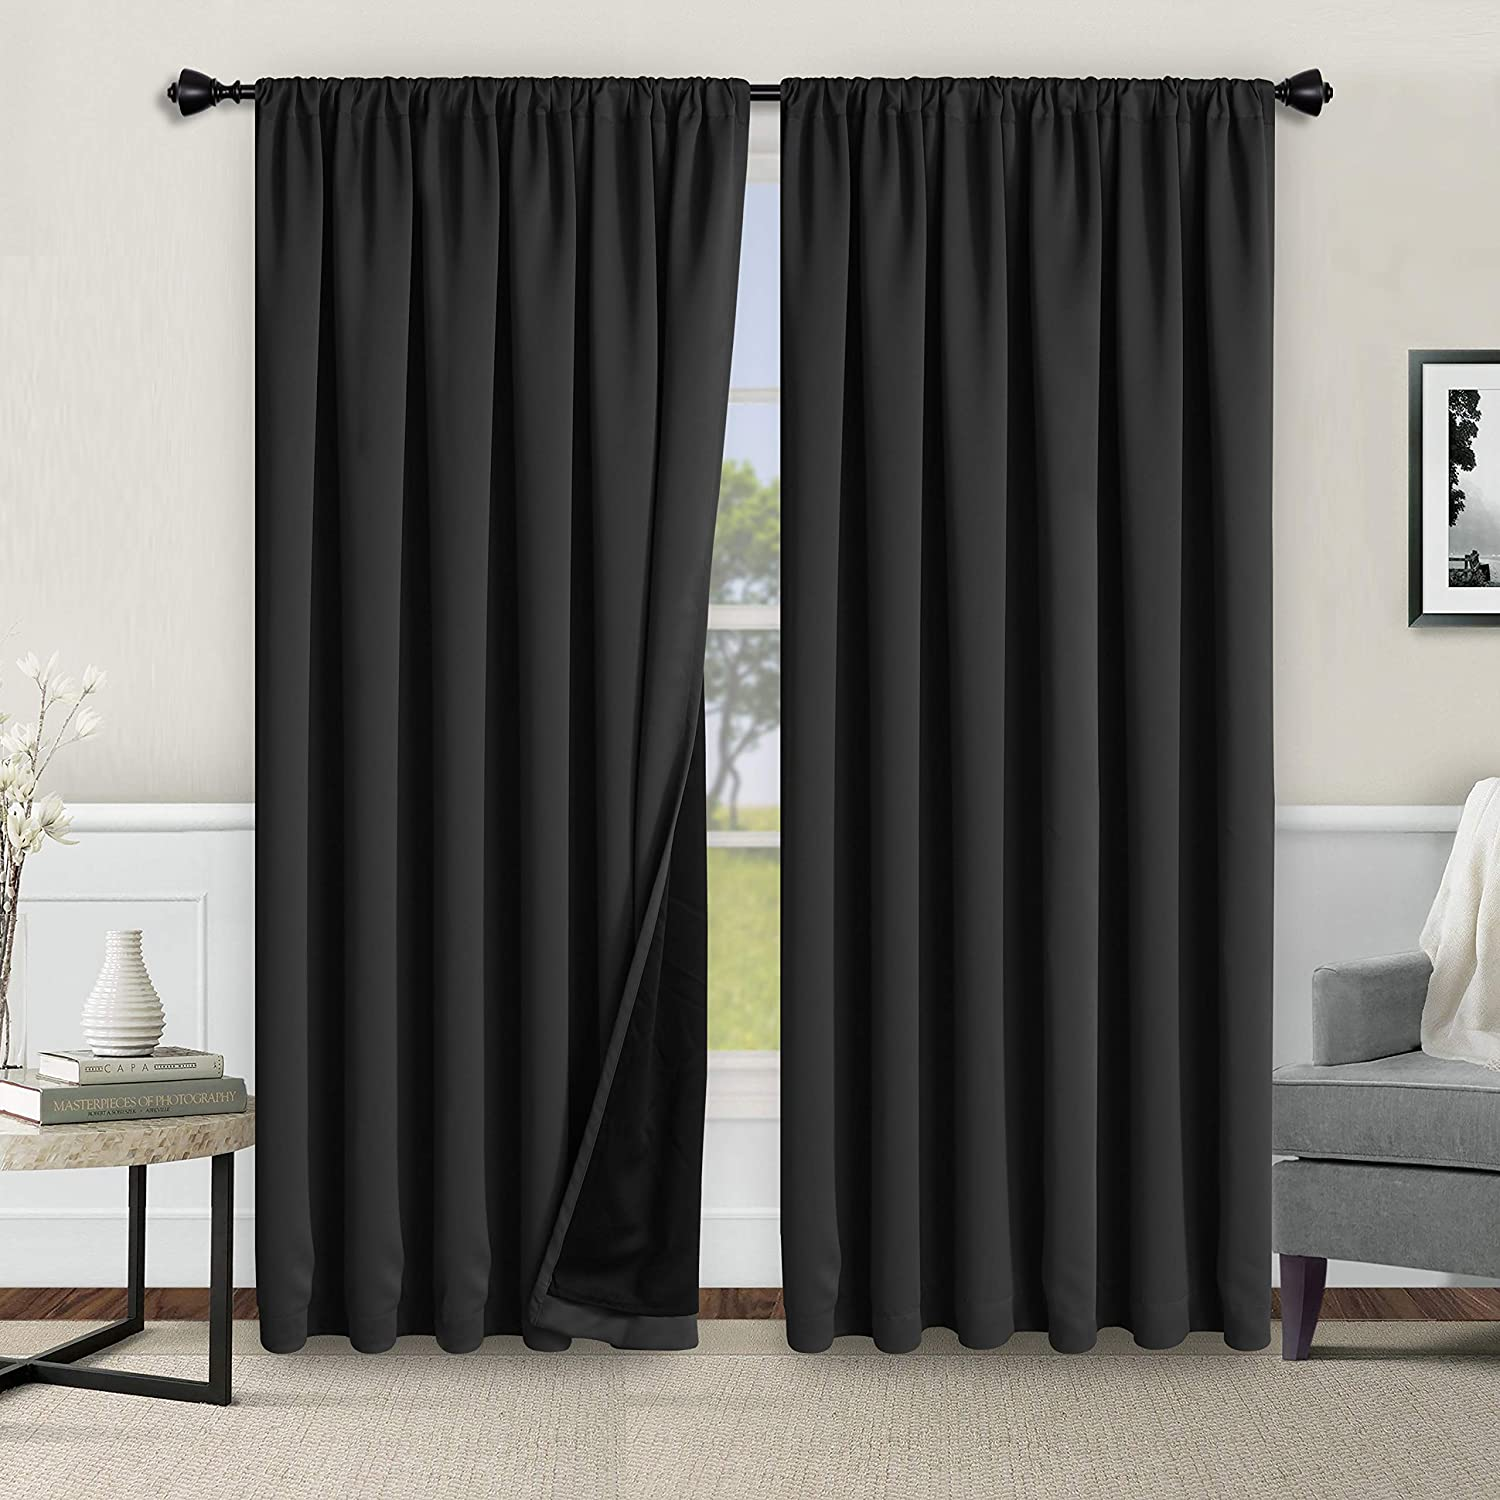 WONTEX 100% Thermal Blackout Curtains - Winter Max 72% OFF Max 89% OFF Insul for Bedroom